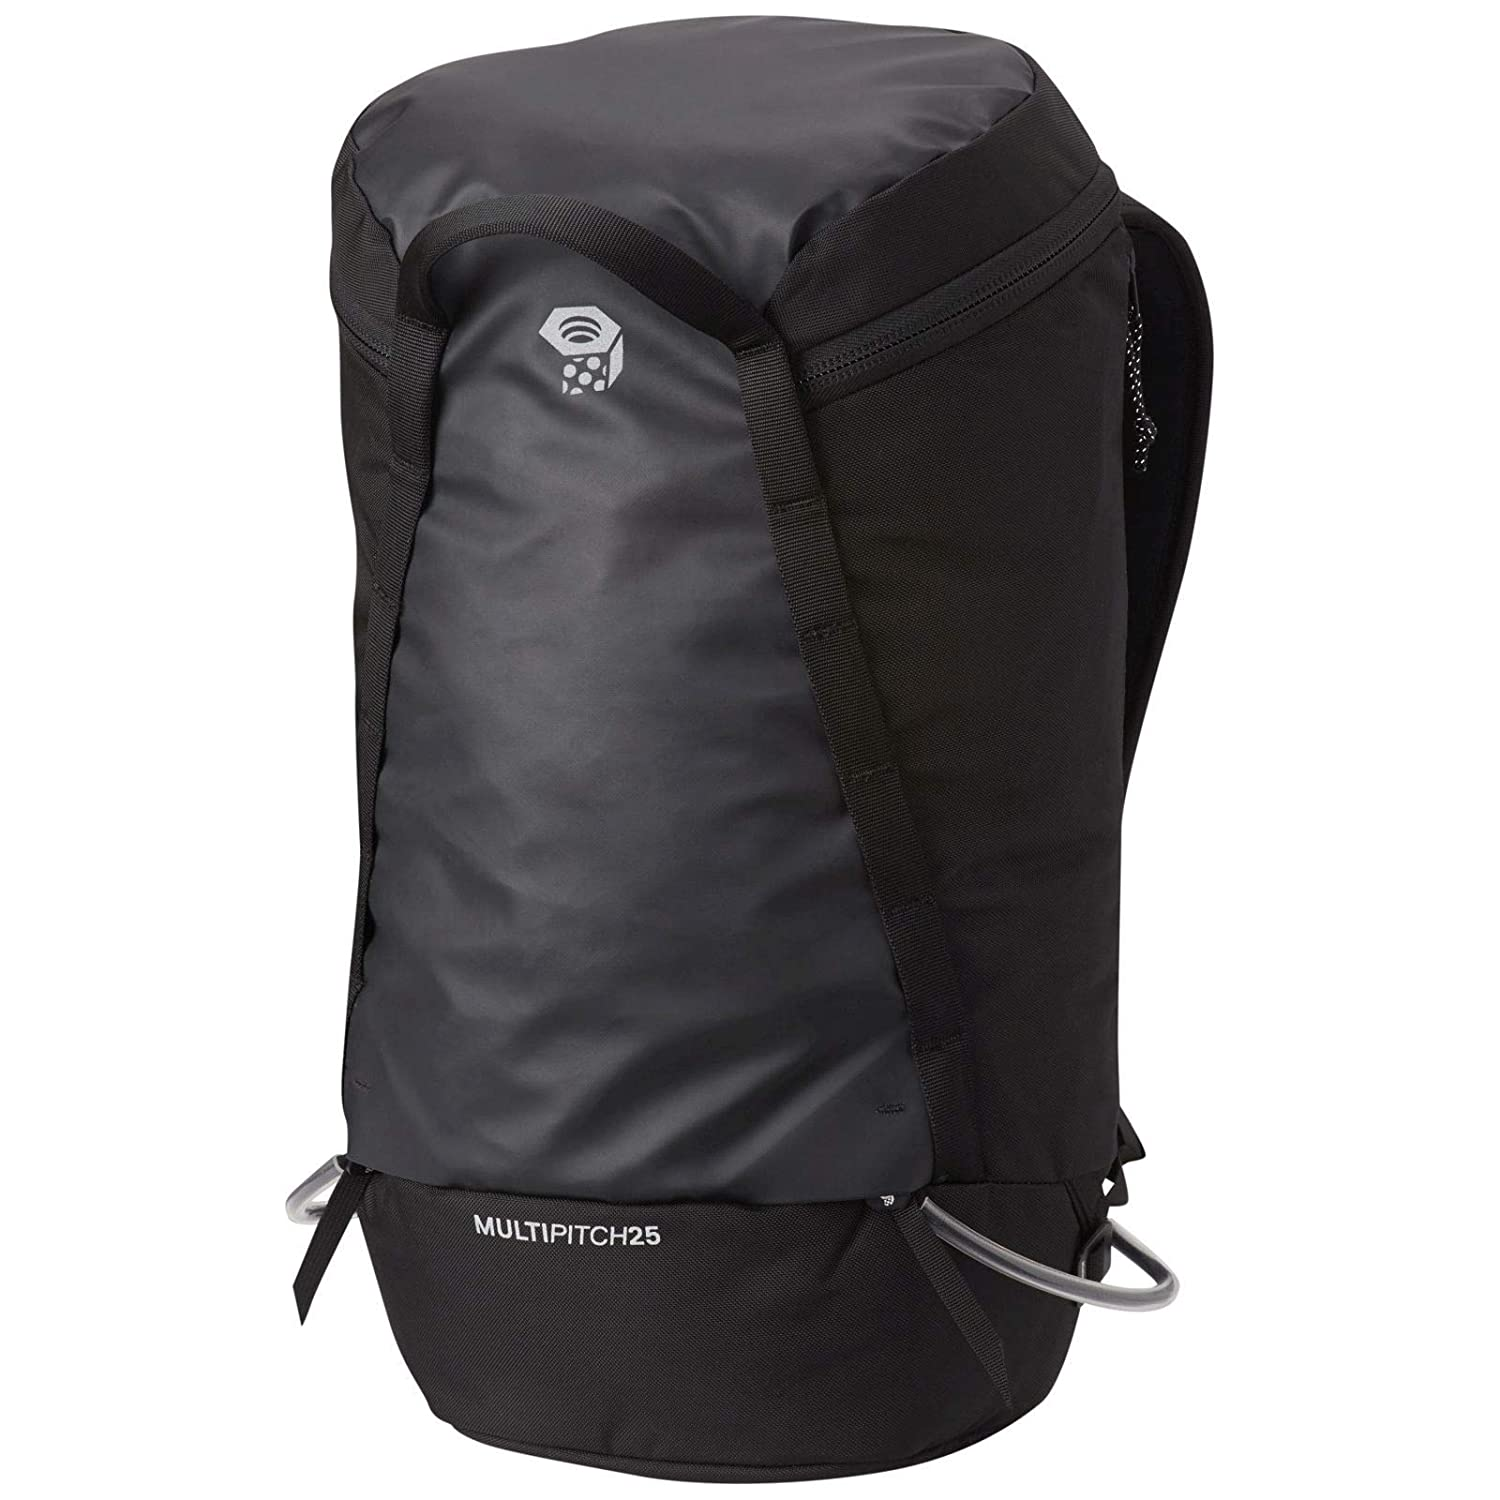 Amazon.com: Mountain Hardwear 1765151 Unisex Multi-Pitch 25 Pack: Sports & Outdoors